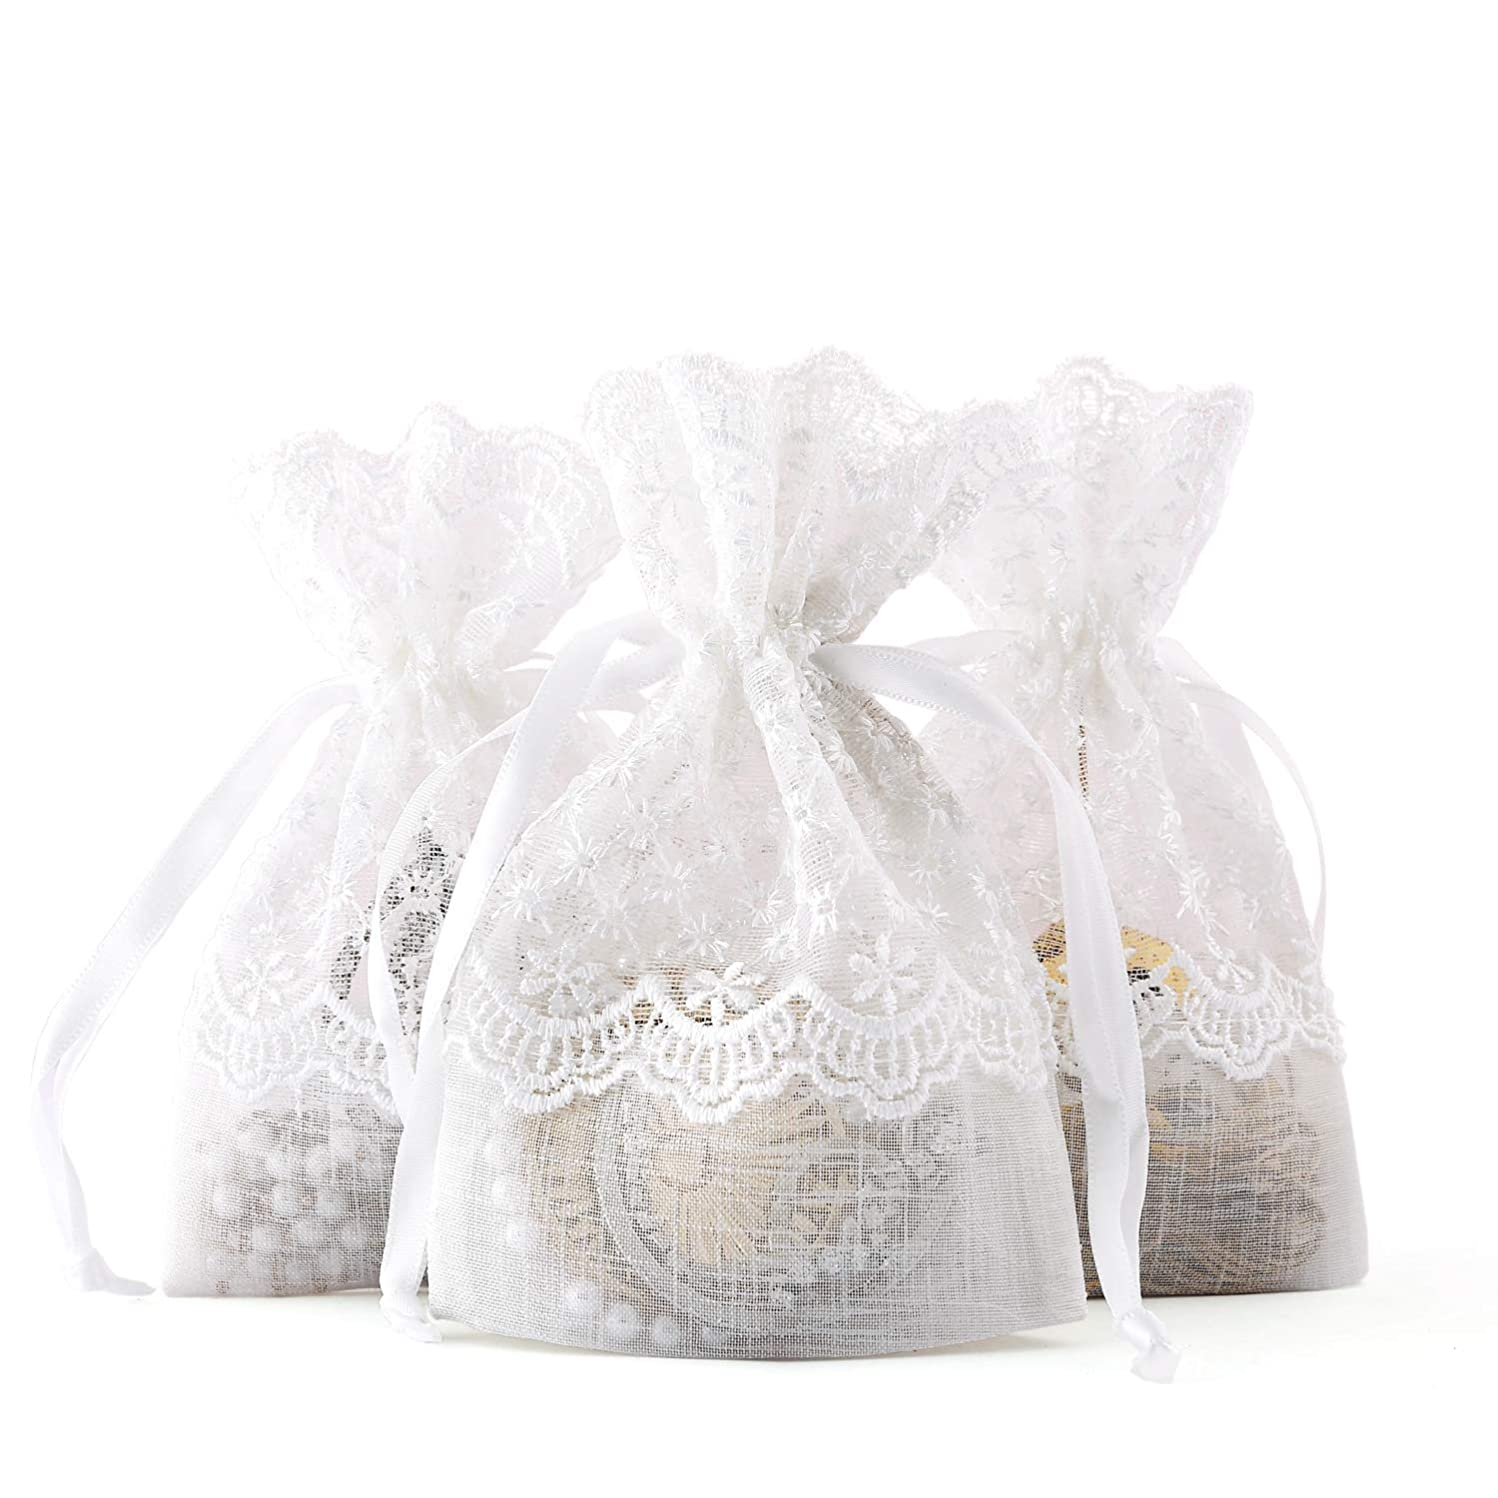 WRAPAHOLIC 4x5.5 inch 20 pcs Lace Drawstring Gift Bag - Elegant Lace Floral Design Wedding Party Welcome Favor Bags